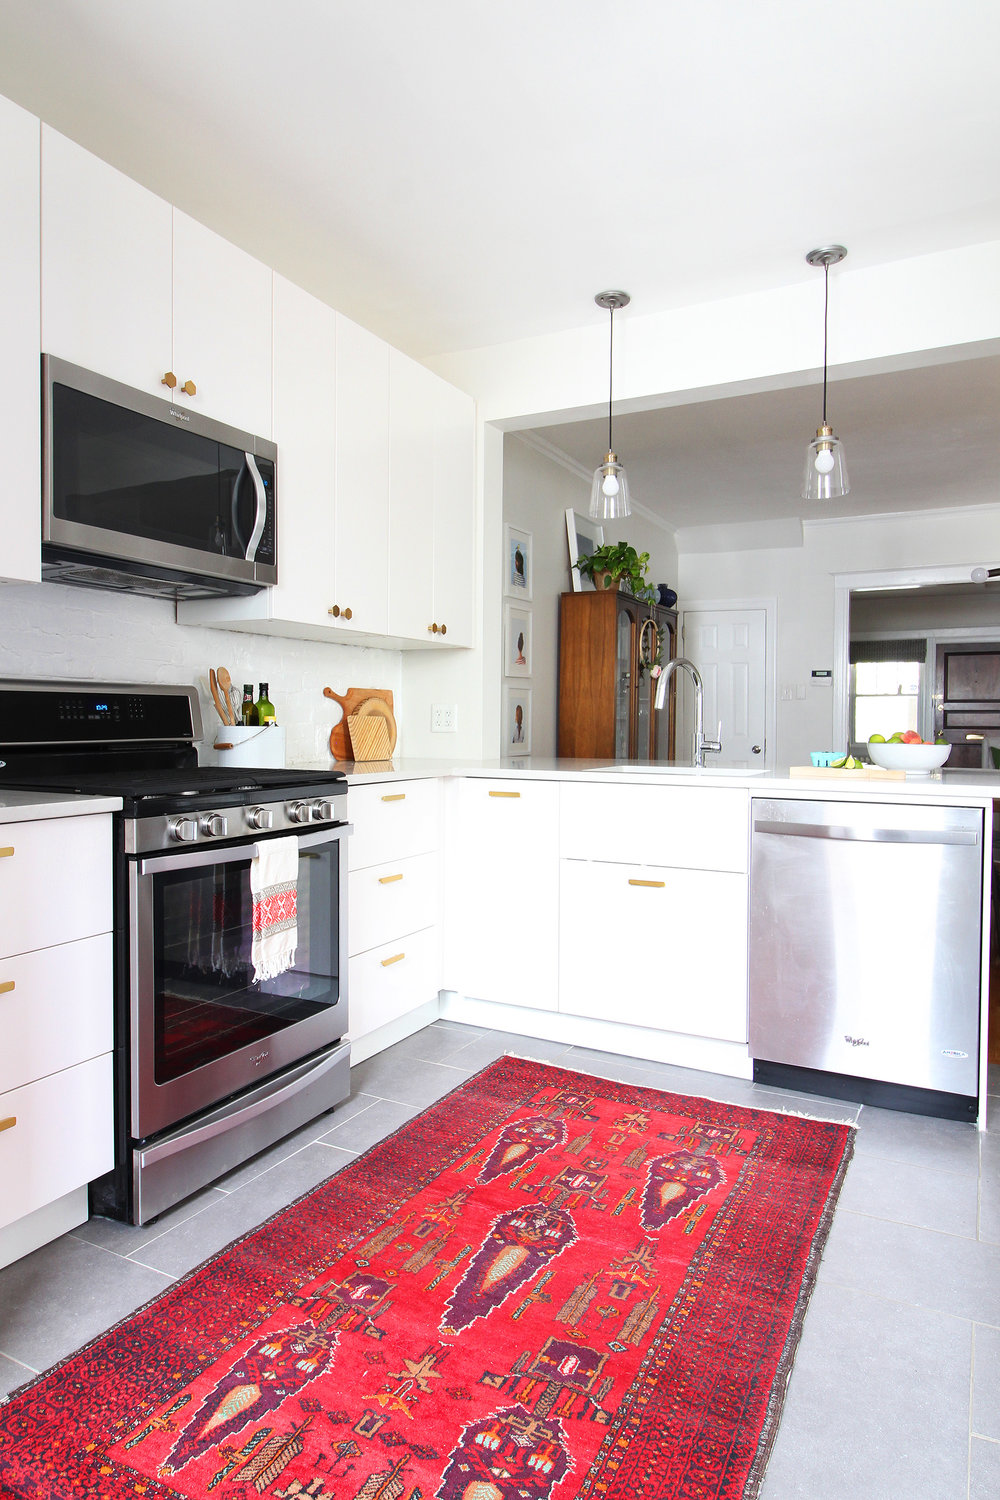 Our Modern White Kitchen Renovation Two Years Later — Mix & Match ...